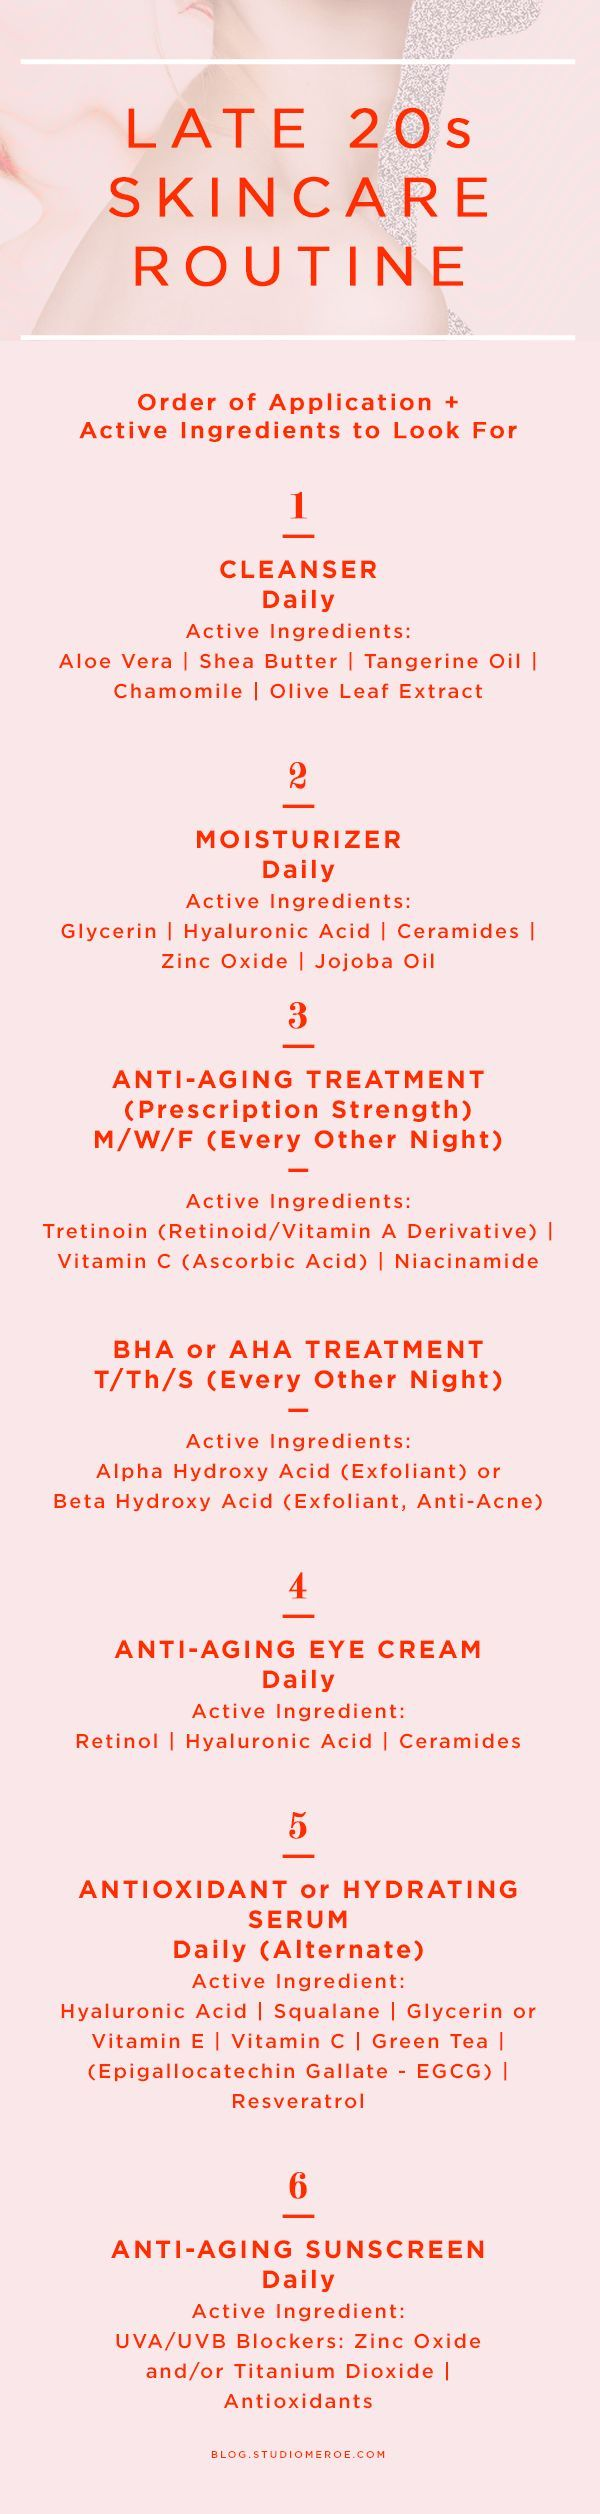 Late 20s skin care routine | Order of application + active ingredients to look for | skin care tips | anti-aging |